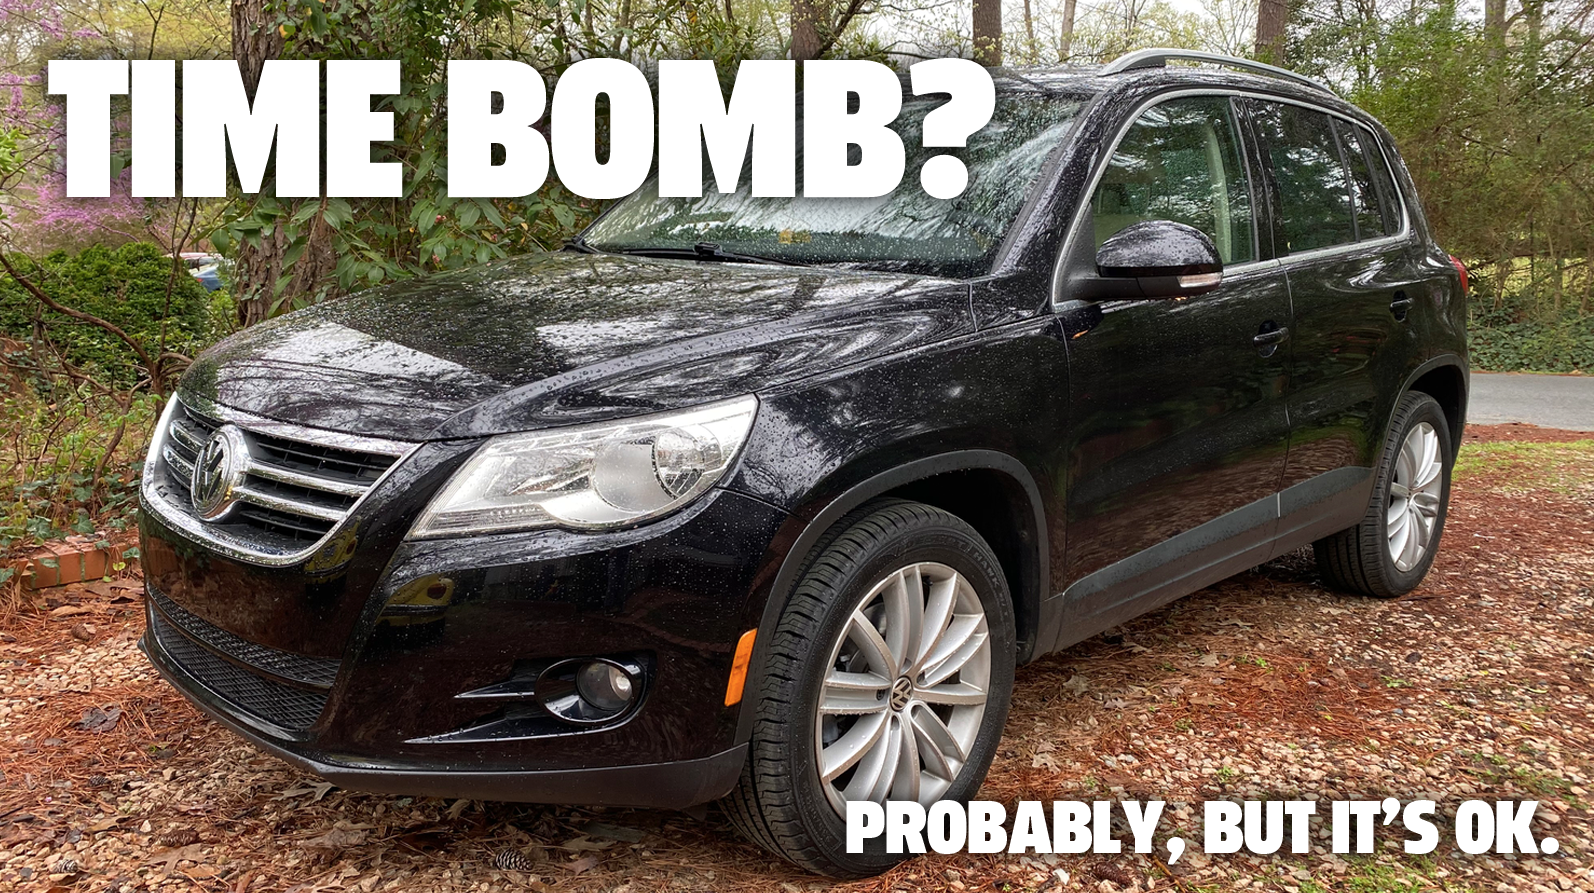 Why I Think I'm OK With Buying A Car That's Probably A Time Bomb